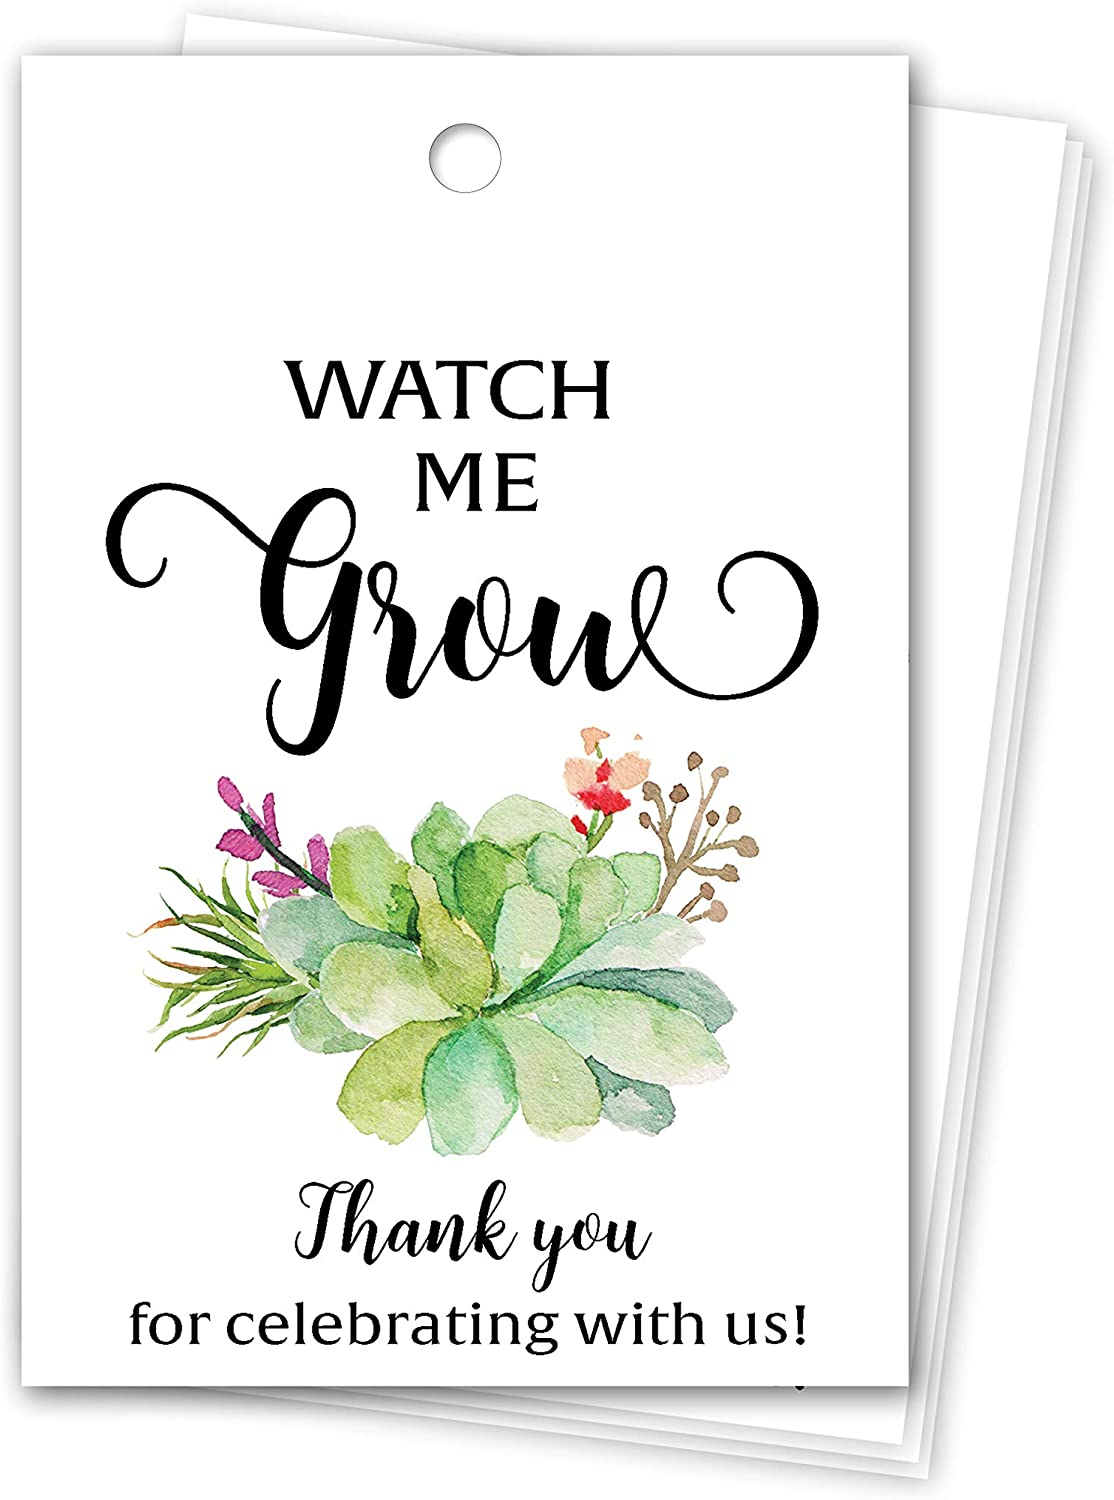 Succulent Watch me Grow Favor Tags— Pack of 25 — Baby Shower Thank You Tags, Watch me Grow Tags for Succulents, Greenery Favors, Seed Bag Favors, Hang Tags, Rustic Tag T300-FT2